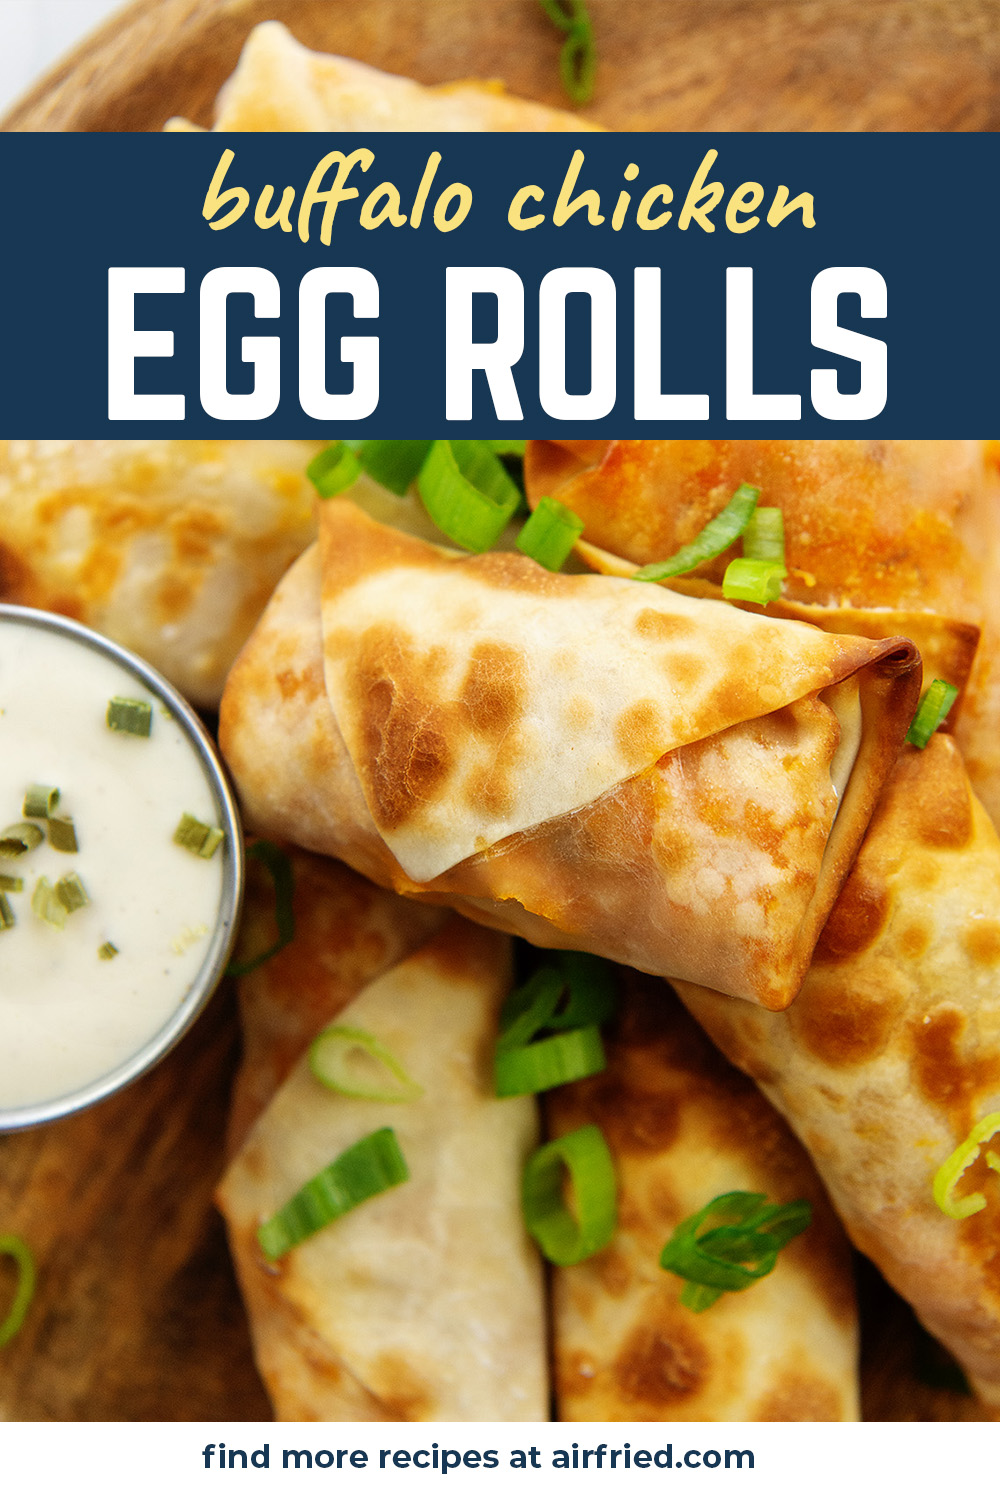 These aren't your traditional egg rolls.  They are filled with a creamy buffalo chicken filling!